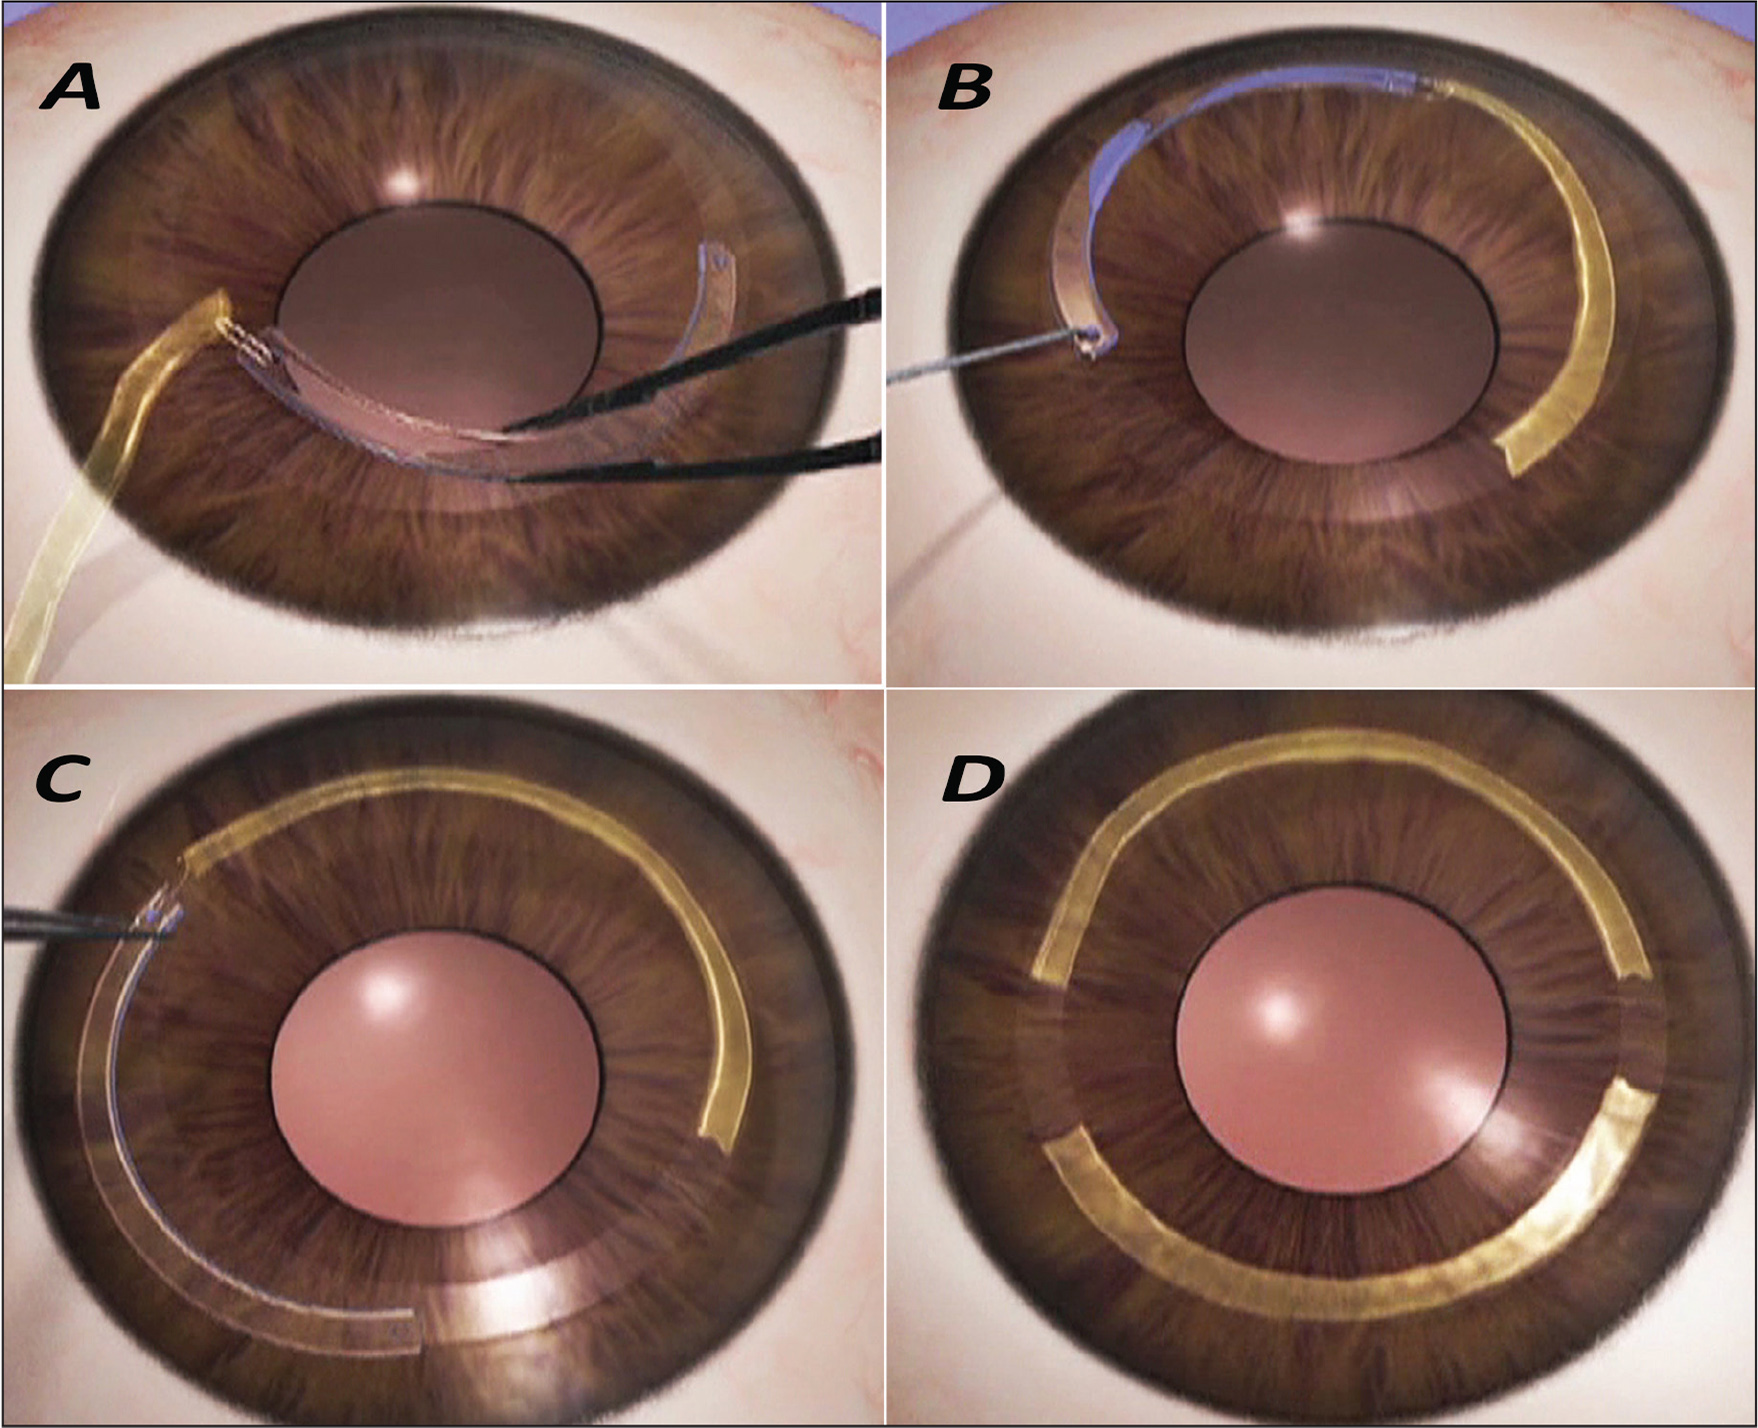 Intacs (Addition Technology, Inc., Sunnyvale, CA) used as an instrument to implant corneal allogenic intrastromal ring segments (CAIRS). (A) CAIRS tied to the positioning hole of the Intacs is drawn into the femtosecond laser–dissected channel behind the Intacs. (B) The Intacs is drawn out of the opposite incision, leaving the first CAIRS within the channel. (C) The same is repeated on the opposite side. (D) Both CAIRS lie within the channel.